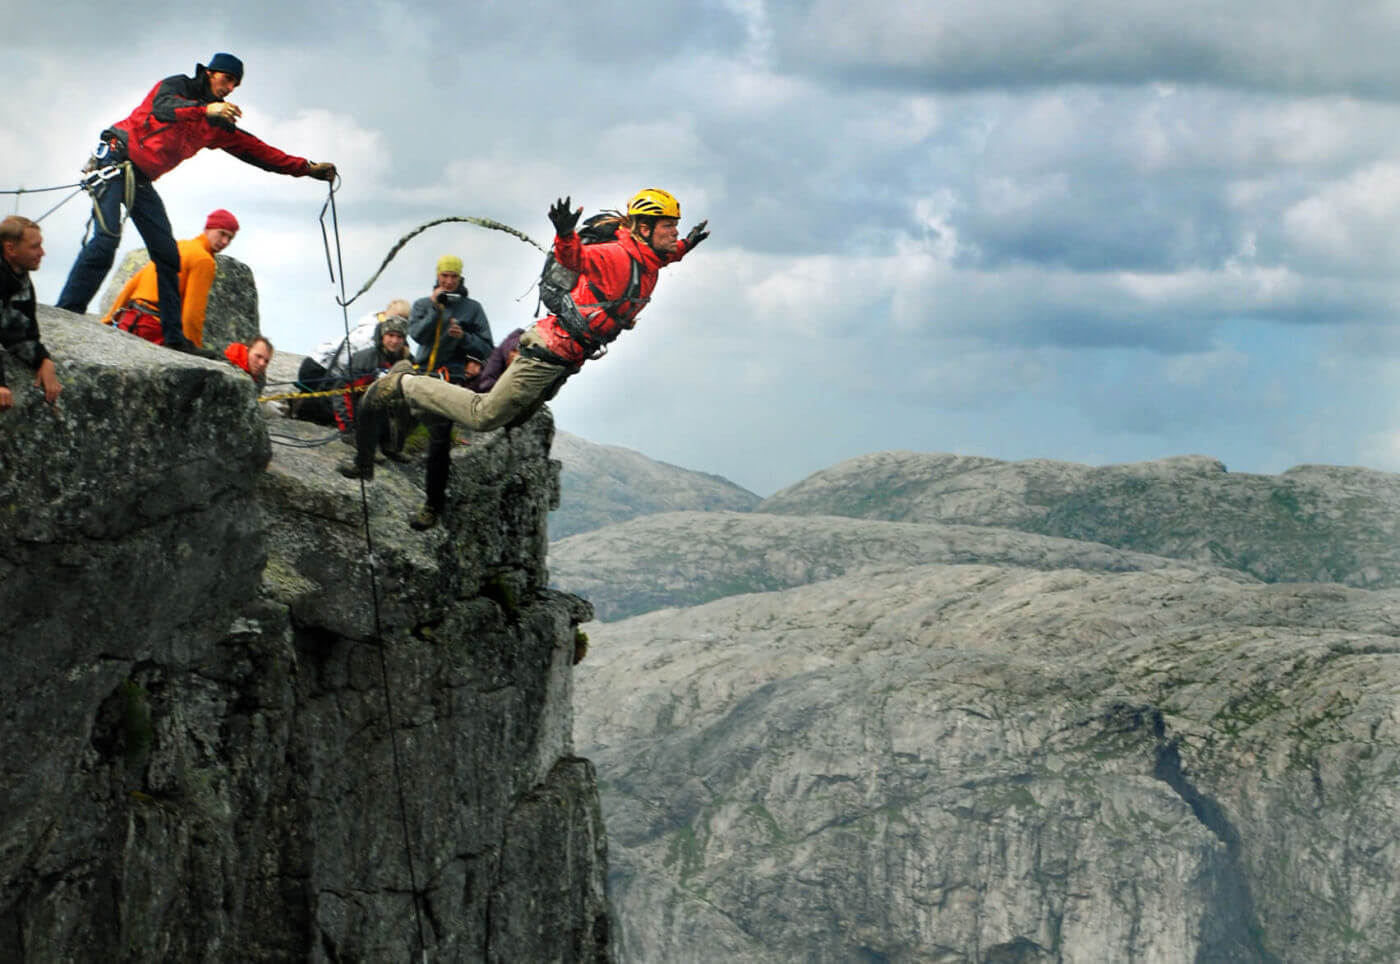 Unforgettable Dates For Adrenaline Junkies